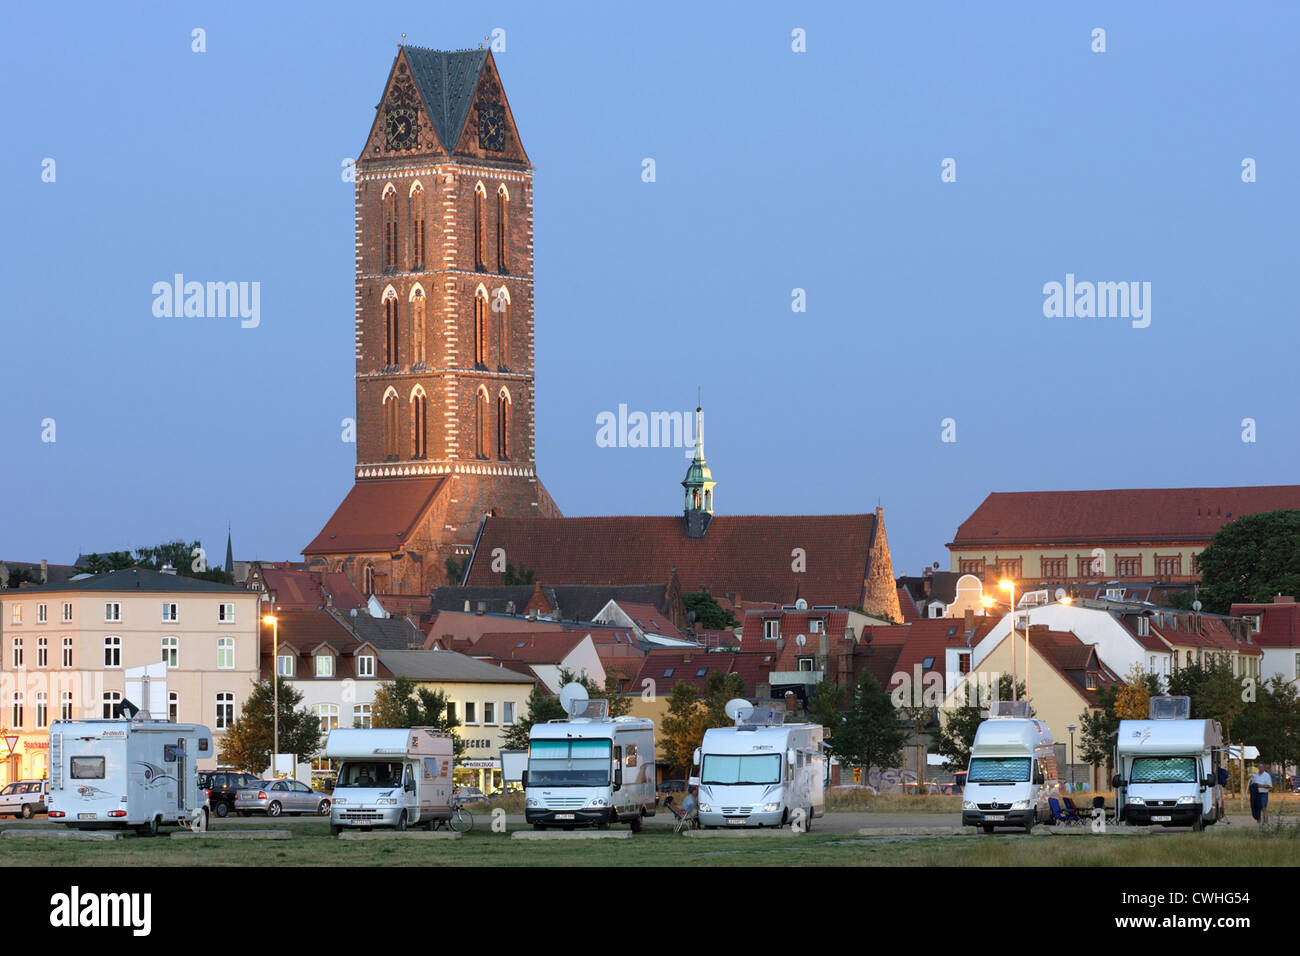 Wismar, Cityscape with the Church of Saint Mary - Stock Image